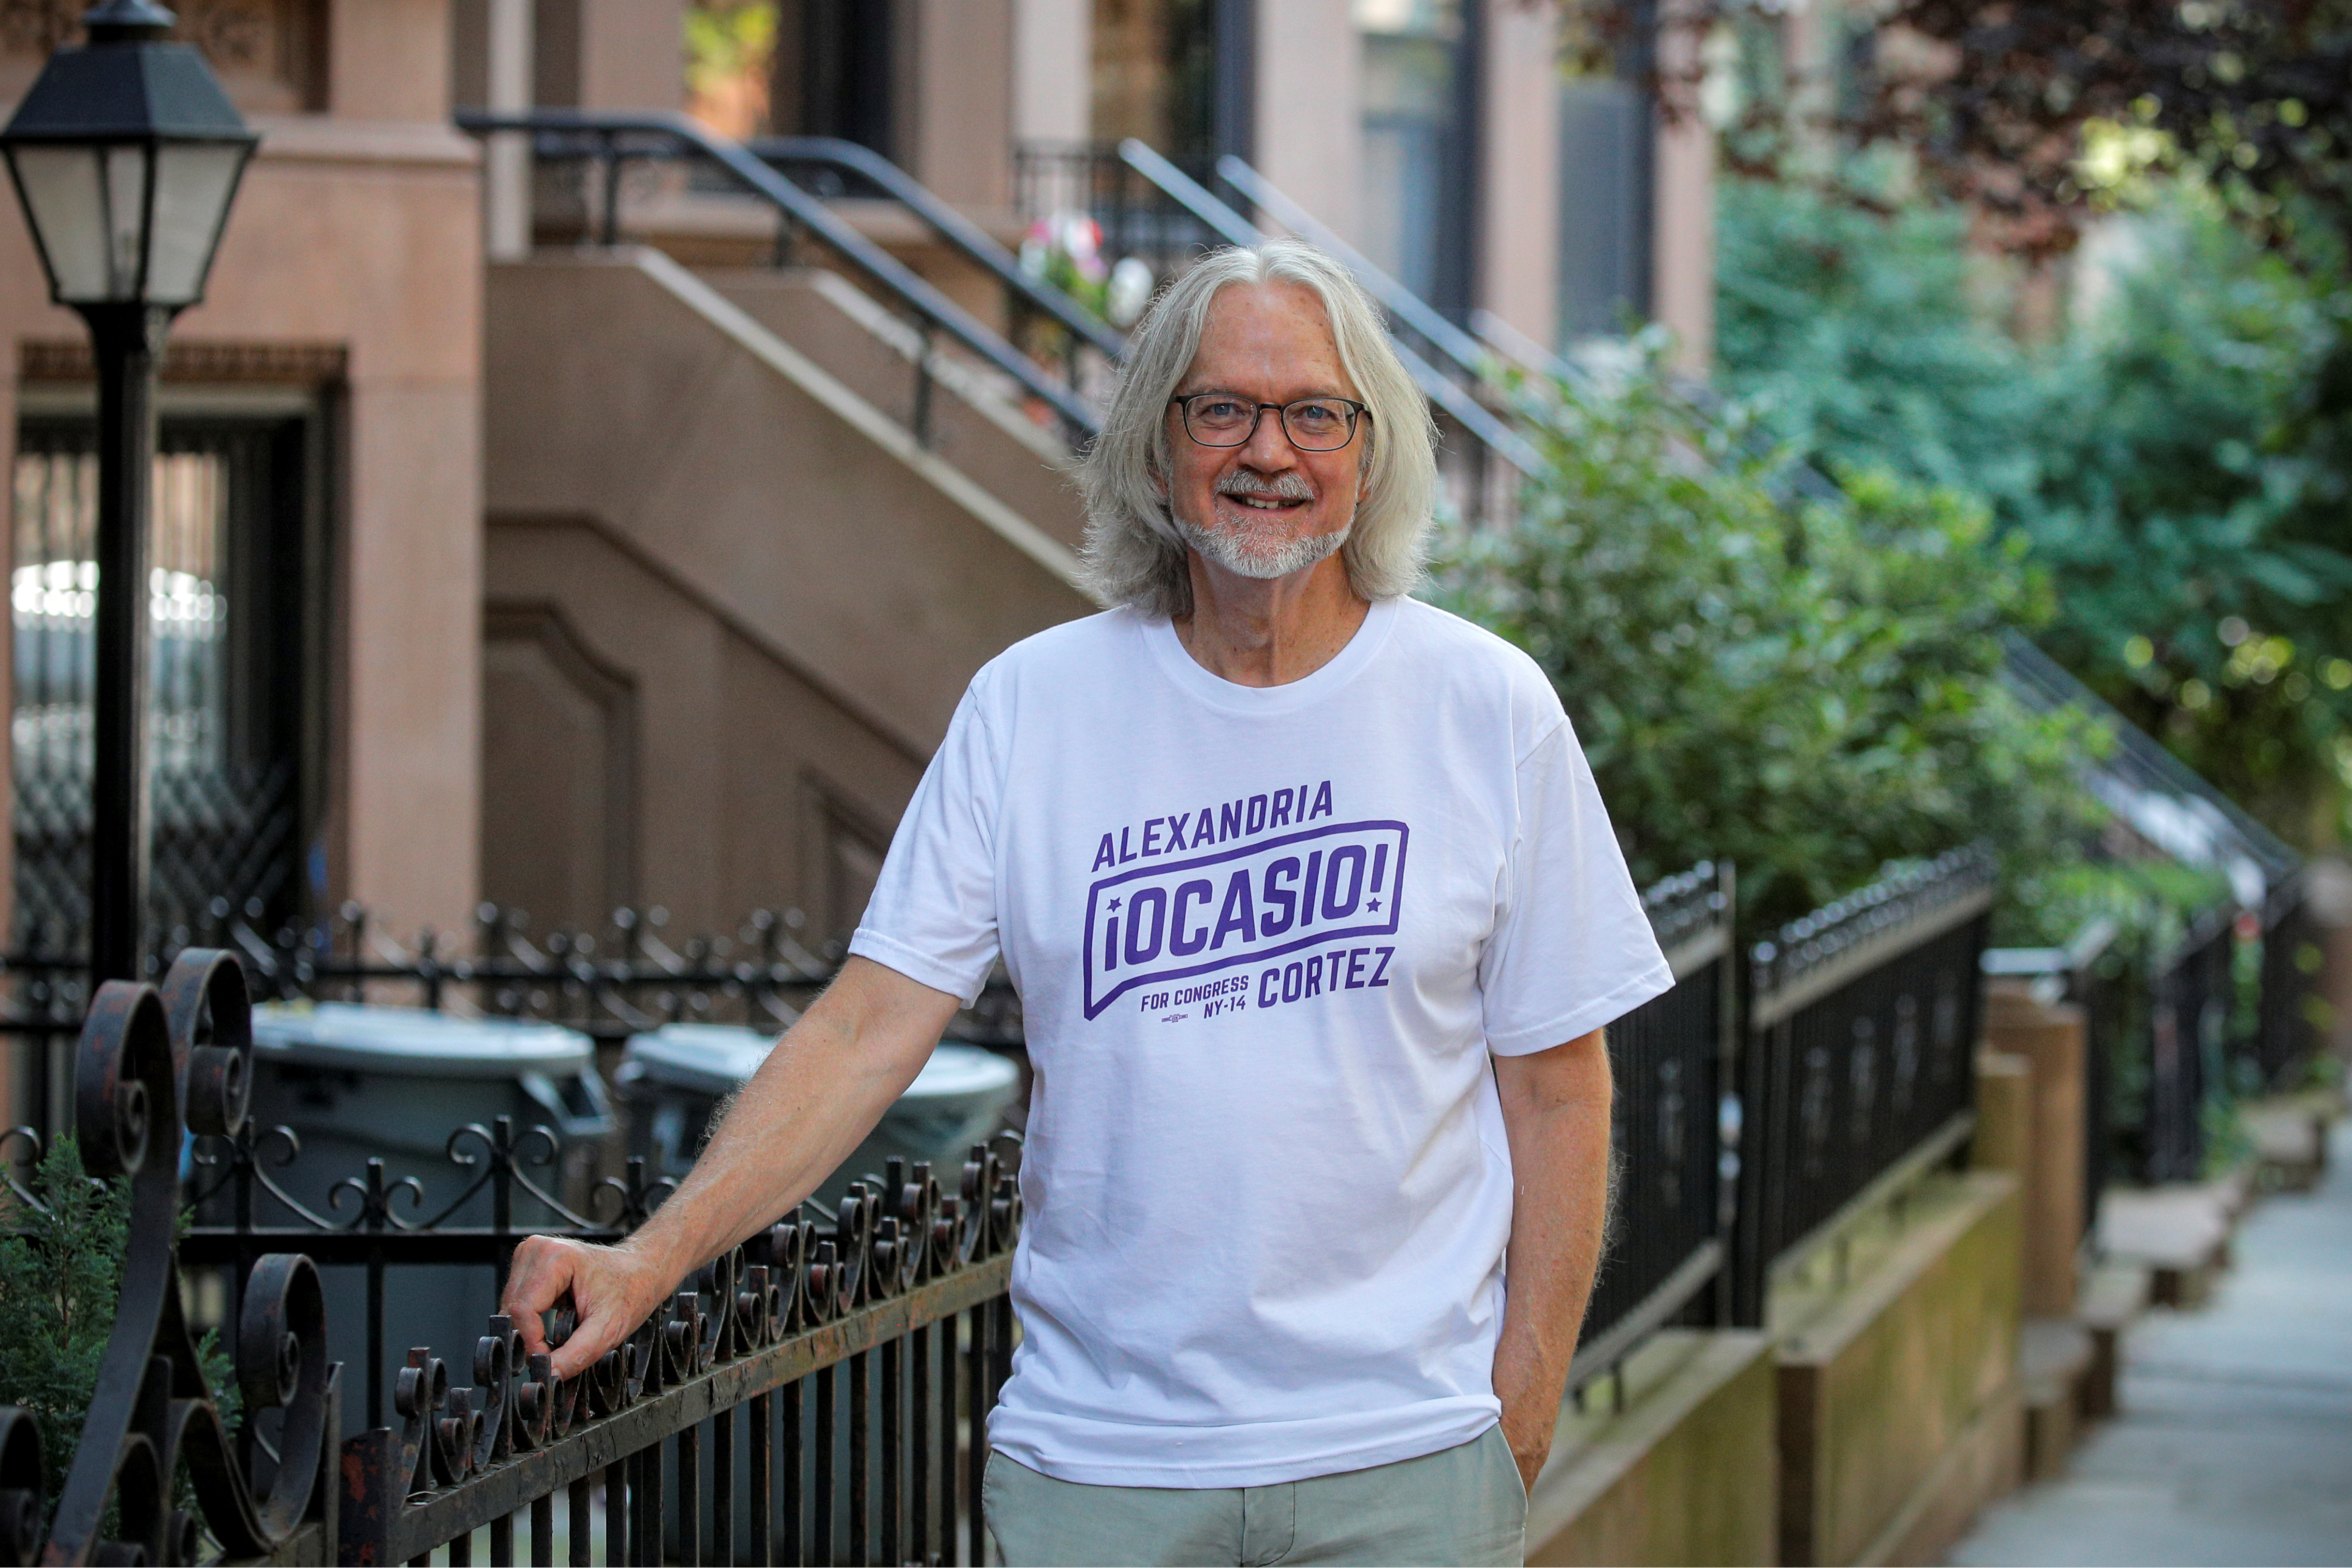 Peter Hogness poses wearing his Alexandria Ocasio-Cortez branded T-shirt in the Park Slope area of Brooklyn in New York City, U.S., July 16, 2021. Picture taken July 16, 2021.  REUTERS/Brendan McDermid